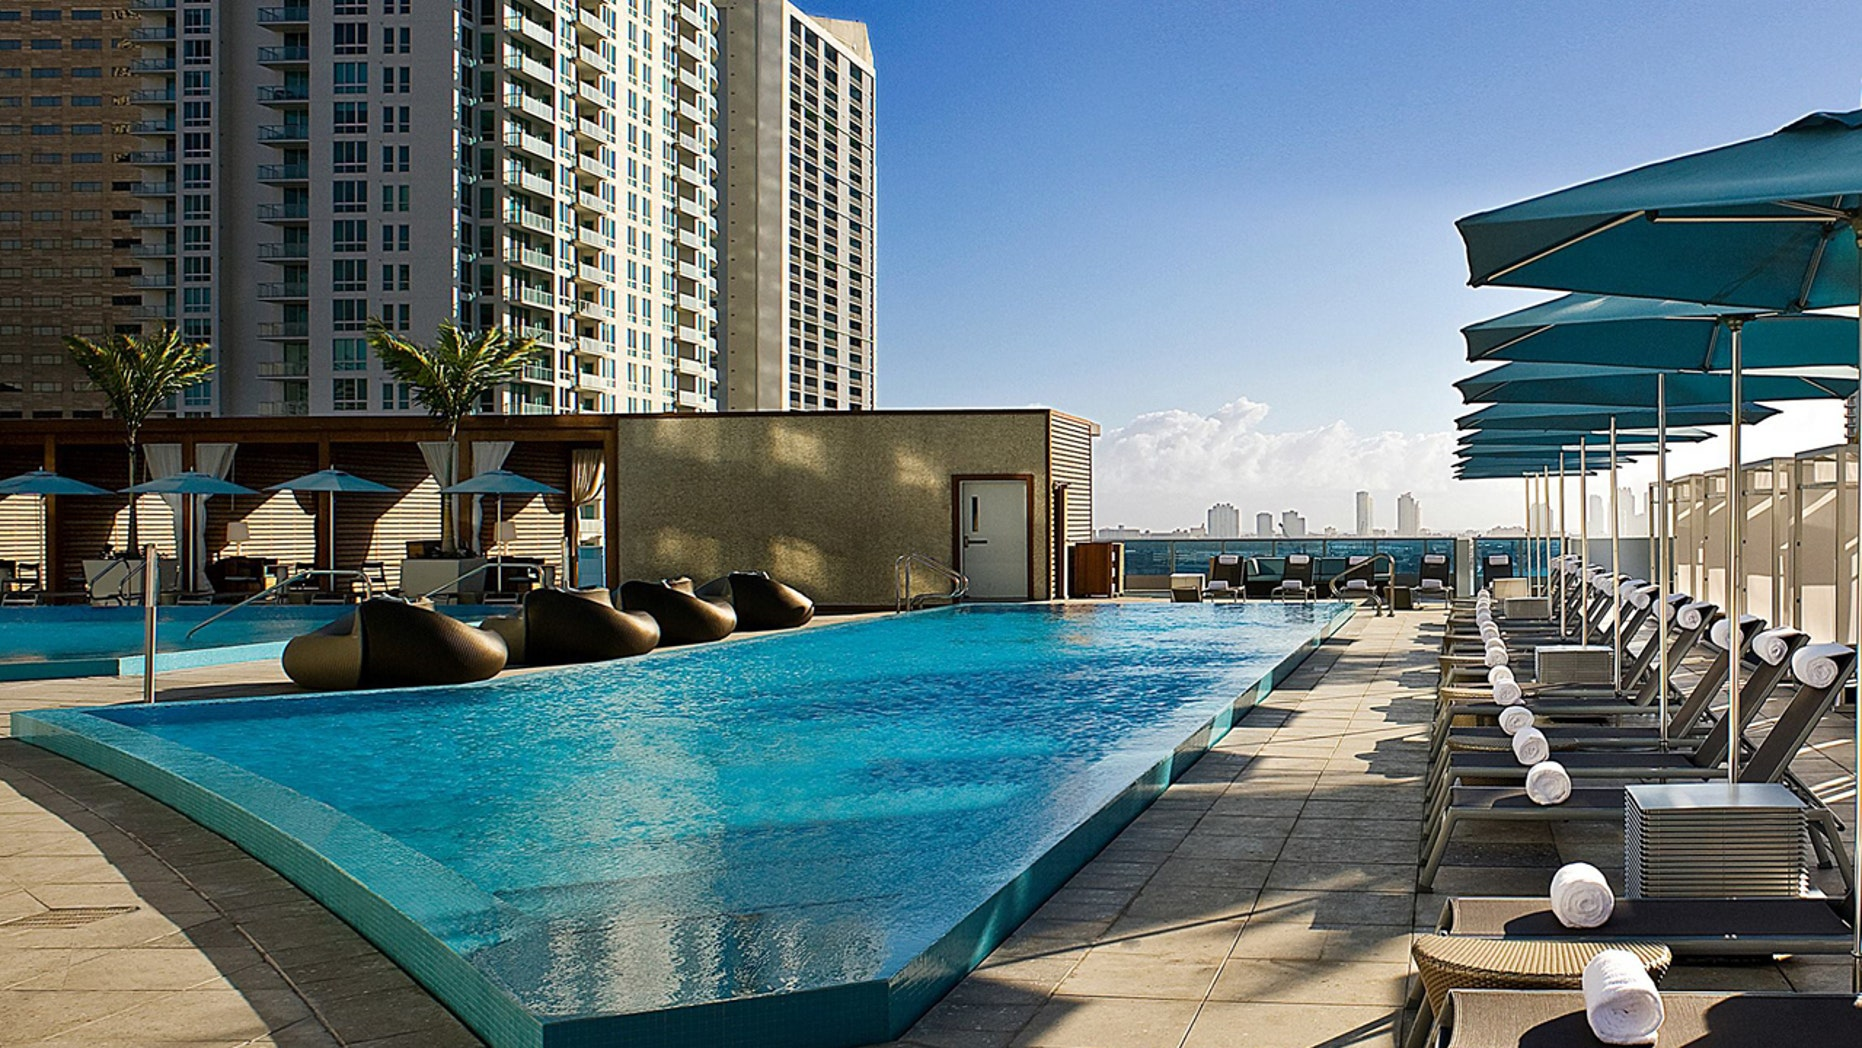 The pool deck at the EPIC hotel, a Kimpton property, in Miami. The boutique hotel chain operates 62 hotels across the country.